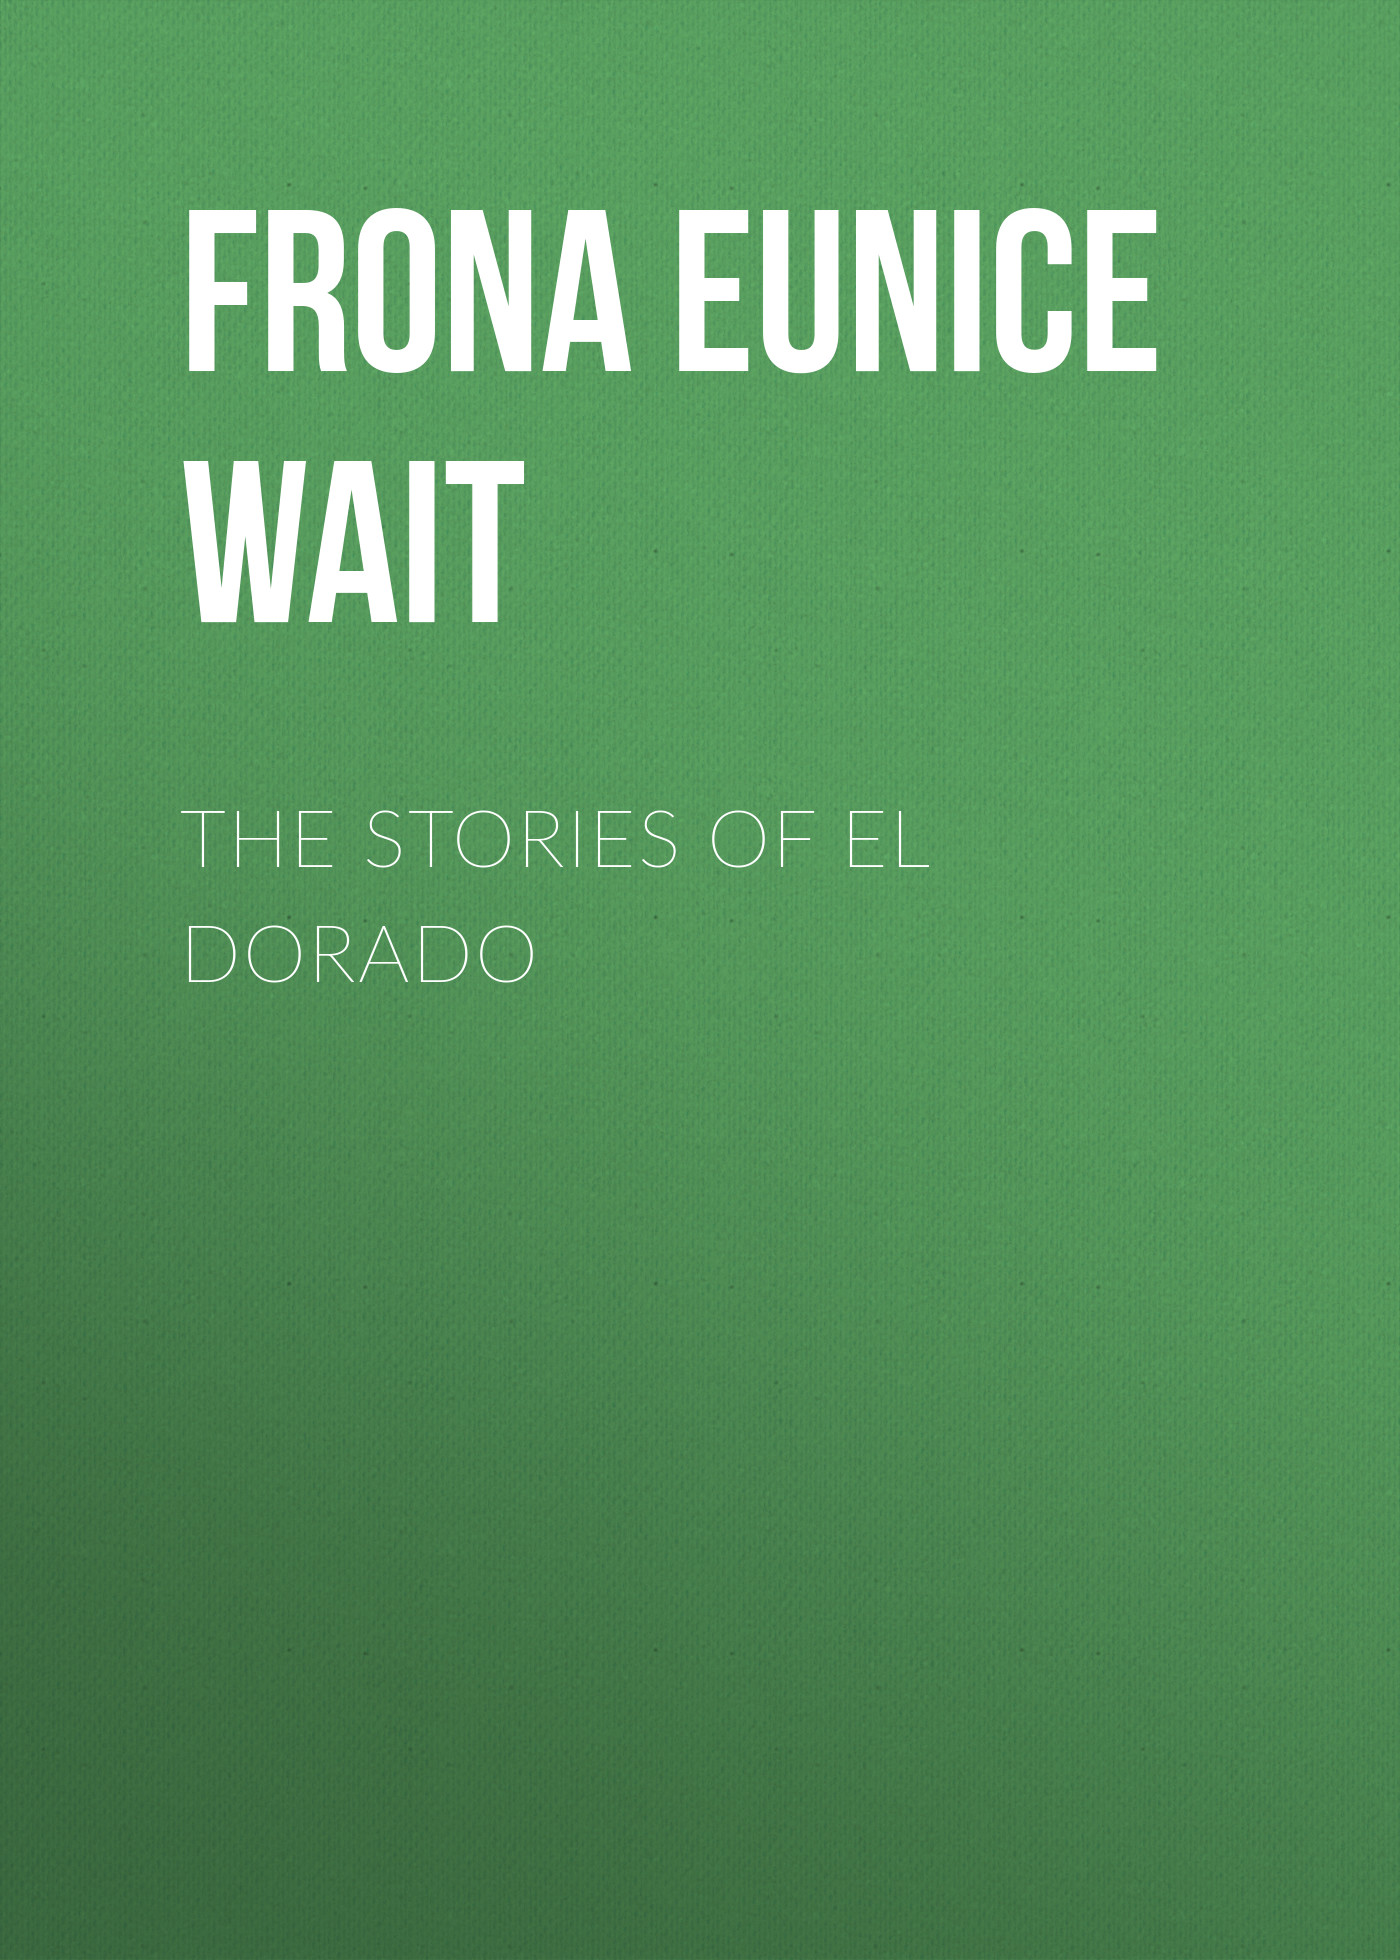 лучшая цена Frona Eunice Wait The Stories of El Dorado